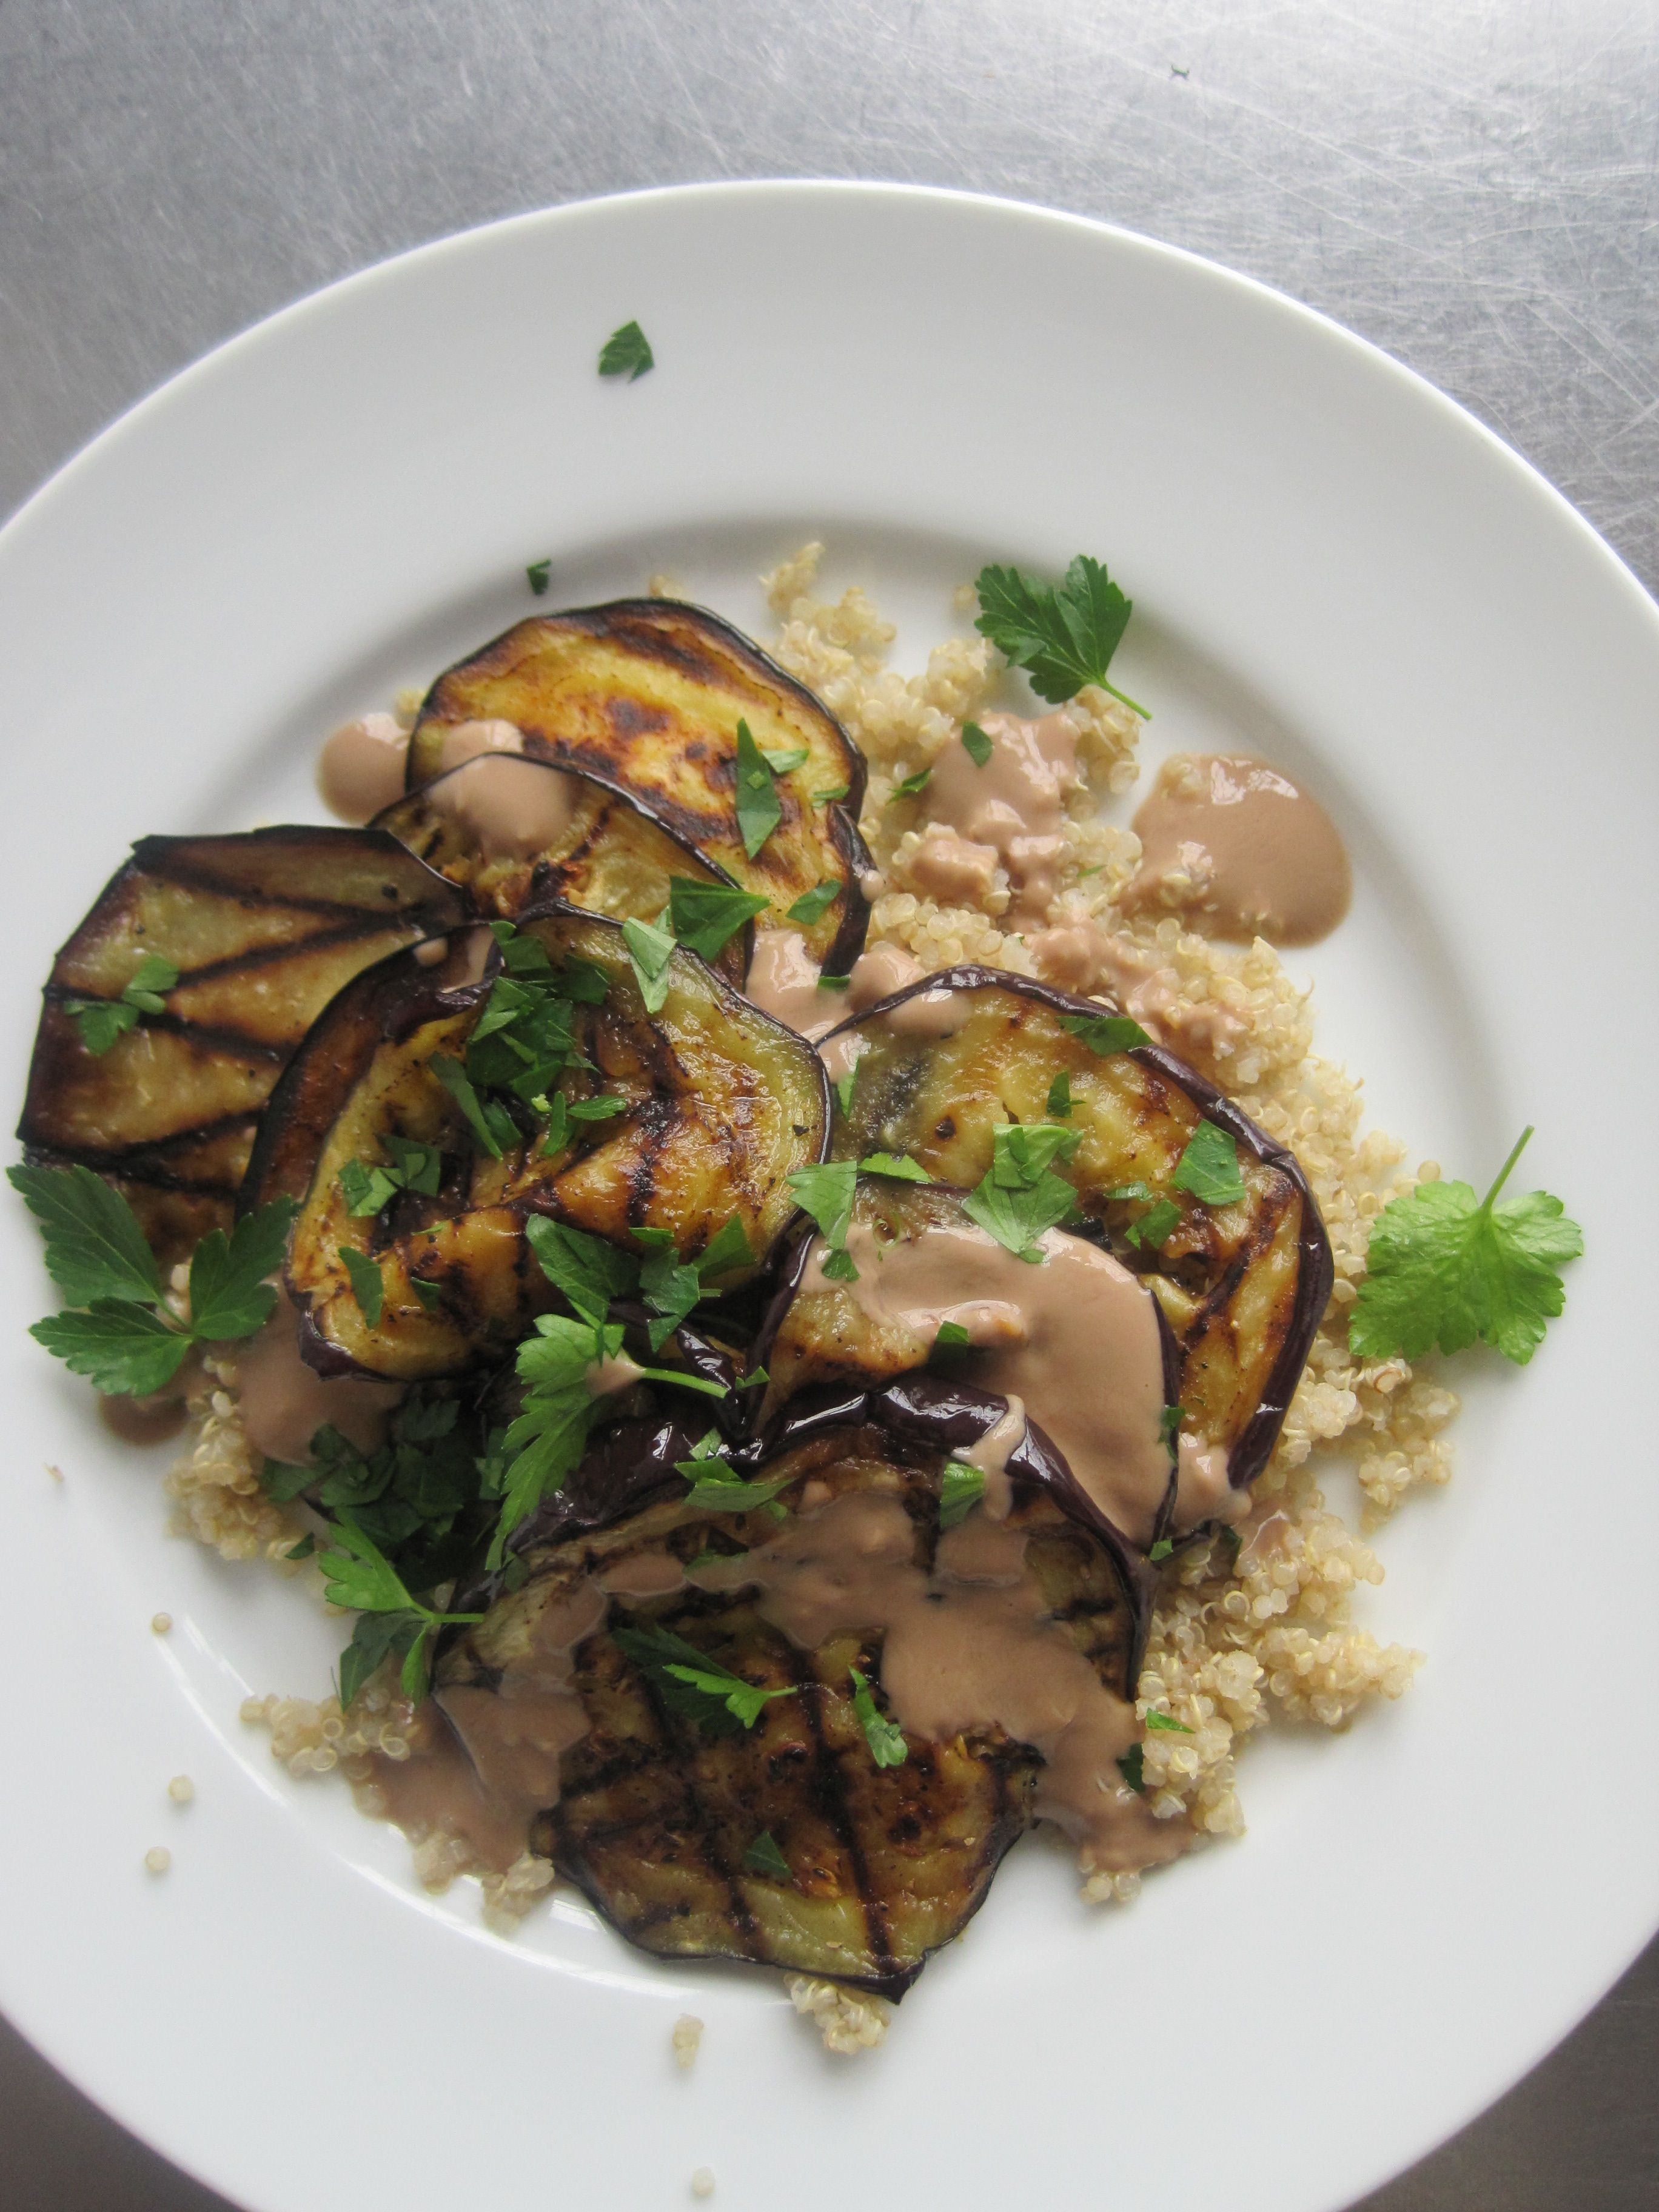 Creamy Grilled Eggplant And Quinoa Eggplant And Grains Like